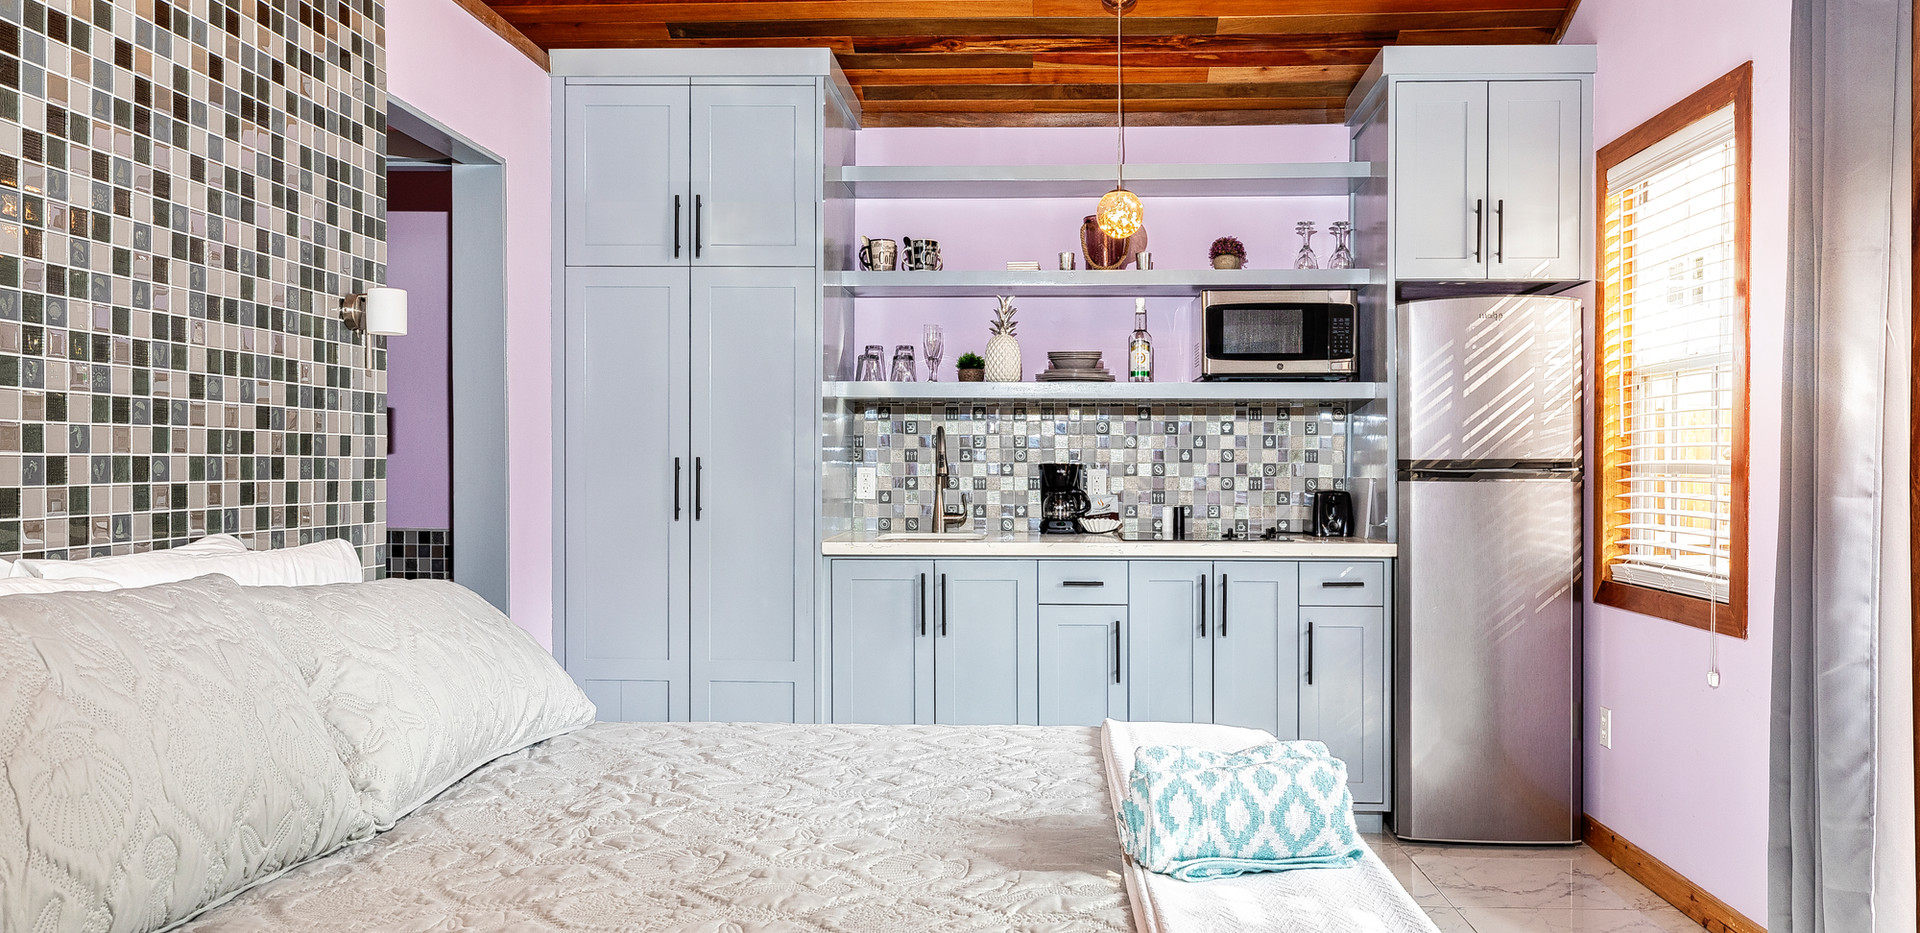 Casita king bed and kitchen